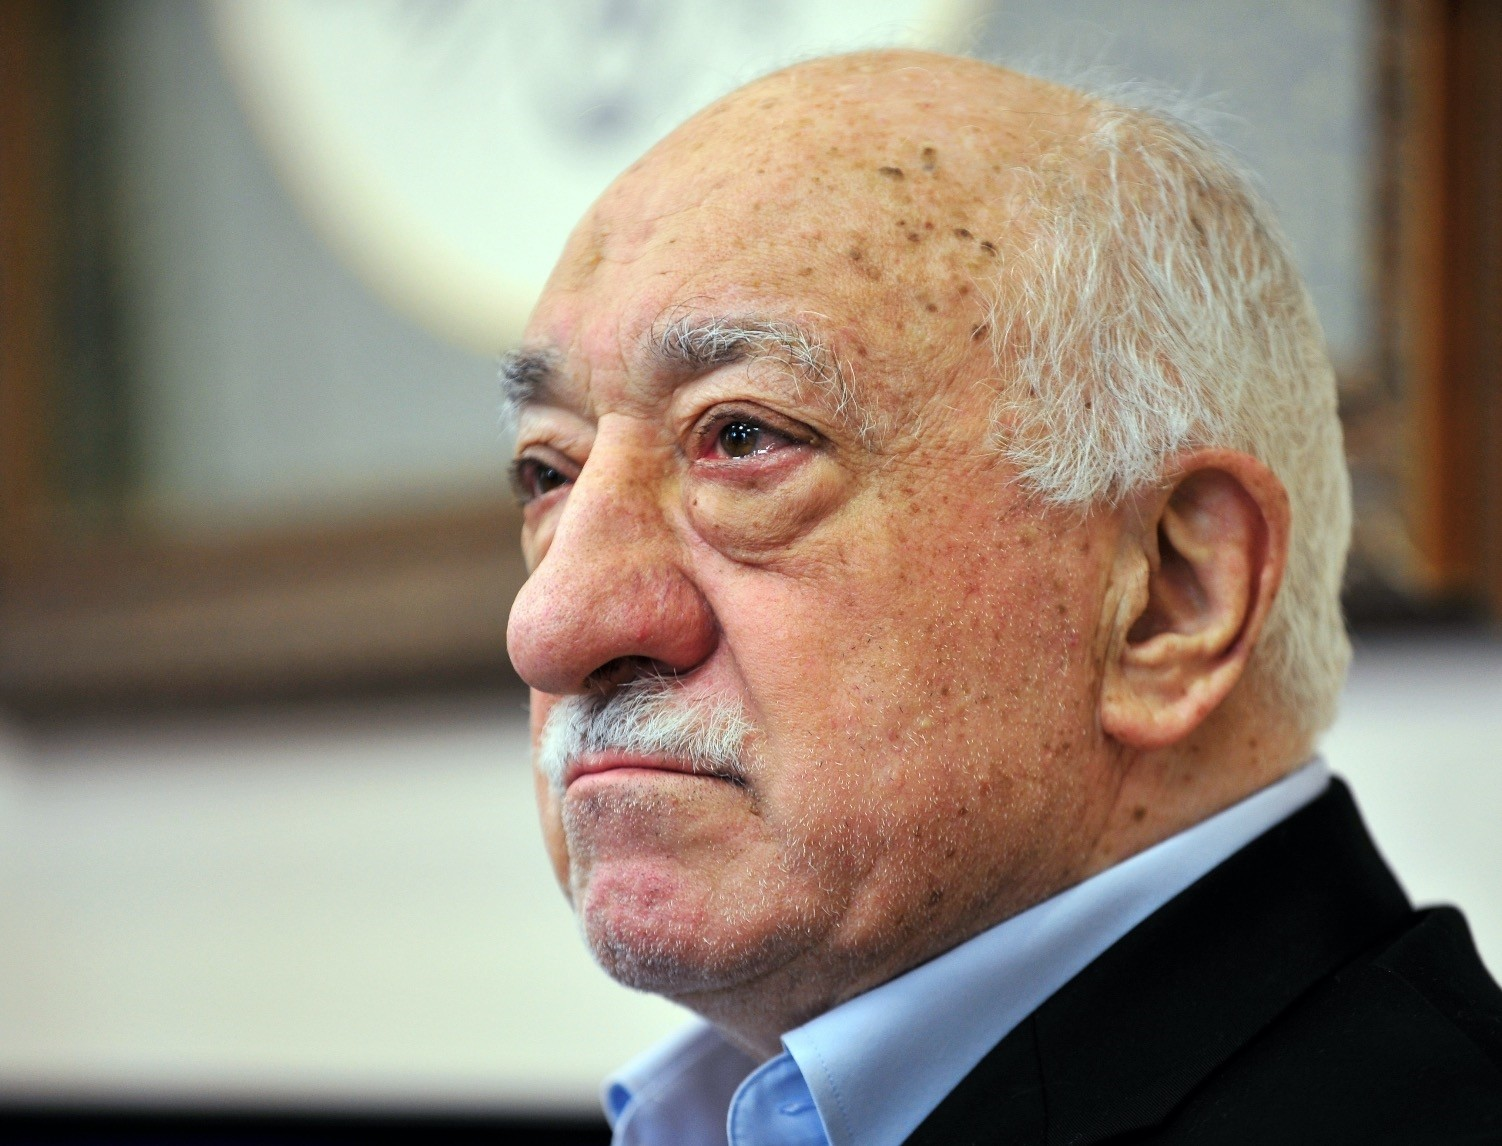 Fethullah Gu00fclen, leader of the Gu00fclenist Terror Group (FETu00d6) speaks to members of the media at his compound, in July 2016, in Pennsylvania.